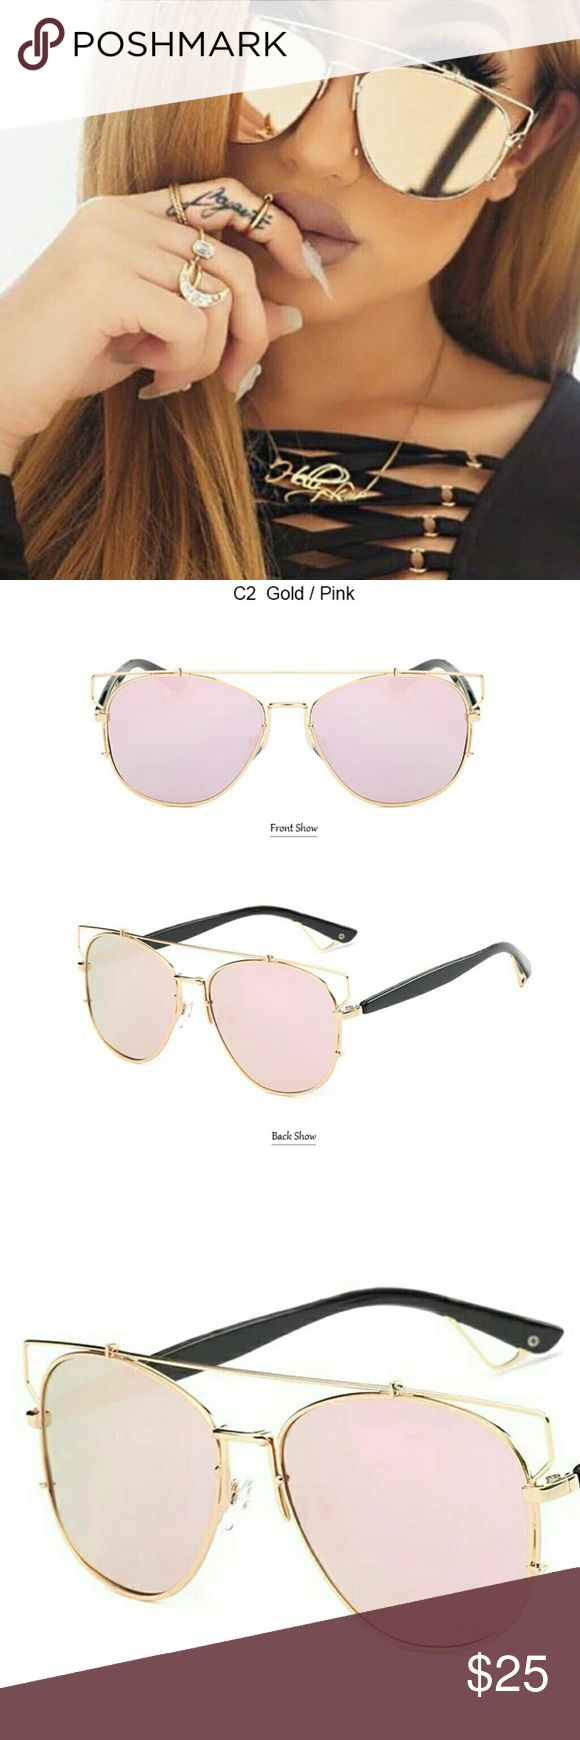 Gold, Pink Sunglasses New Polarized Sunglasses  Mirrored  Pink, Gold  Please be considerate when making an offer.   For all sales under $15, Poshmark takes a flat commission of $2.95. You keep the rest. For sales of $15 or more, you keep 80% of your sale and Poshmark's commission is 20%. Once your sale has been delivered and received by your buyer, the earnings from your sale are yours. Accessories Sunglasses